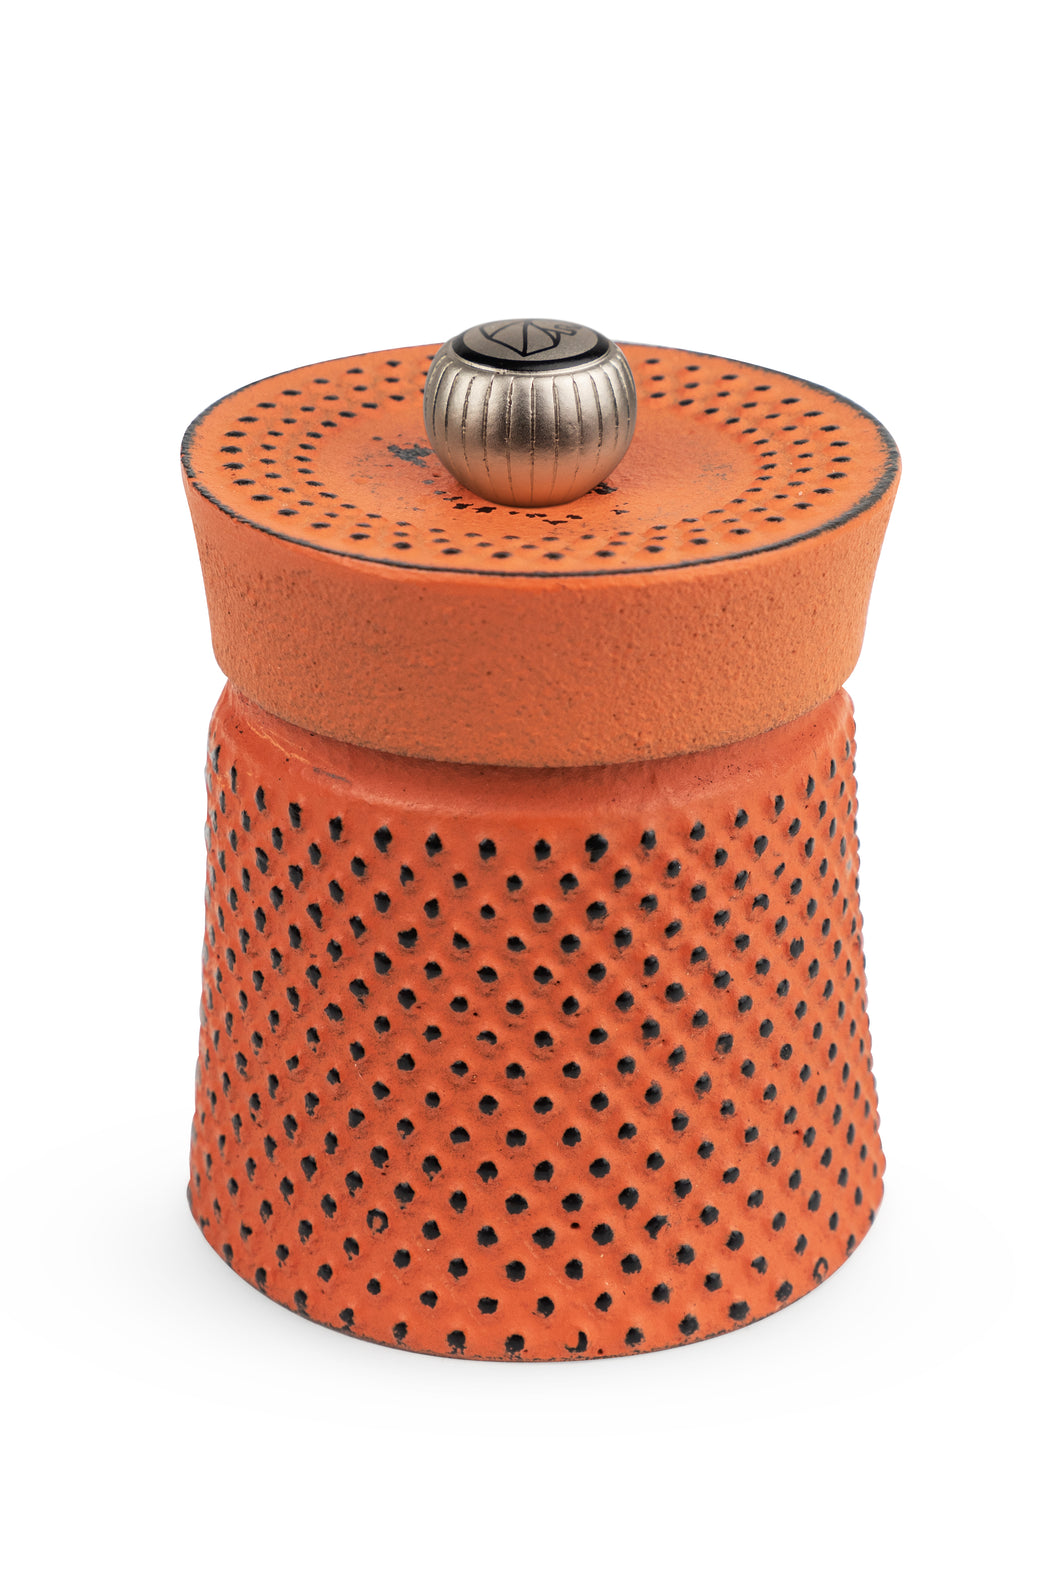 Peugeot | Bali Iron Pepper Mill Orange